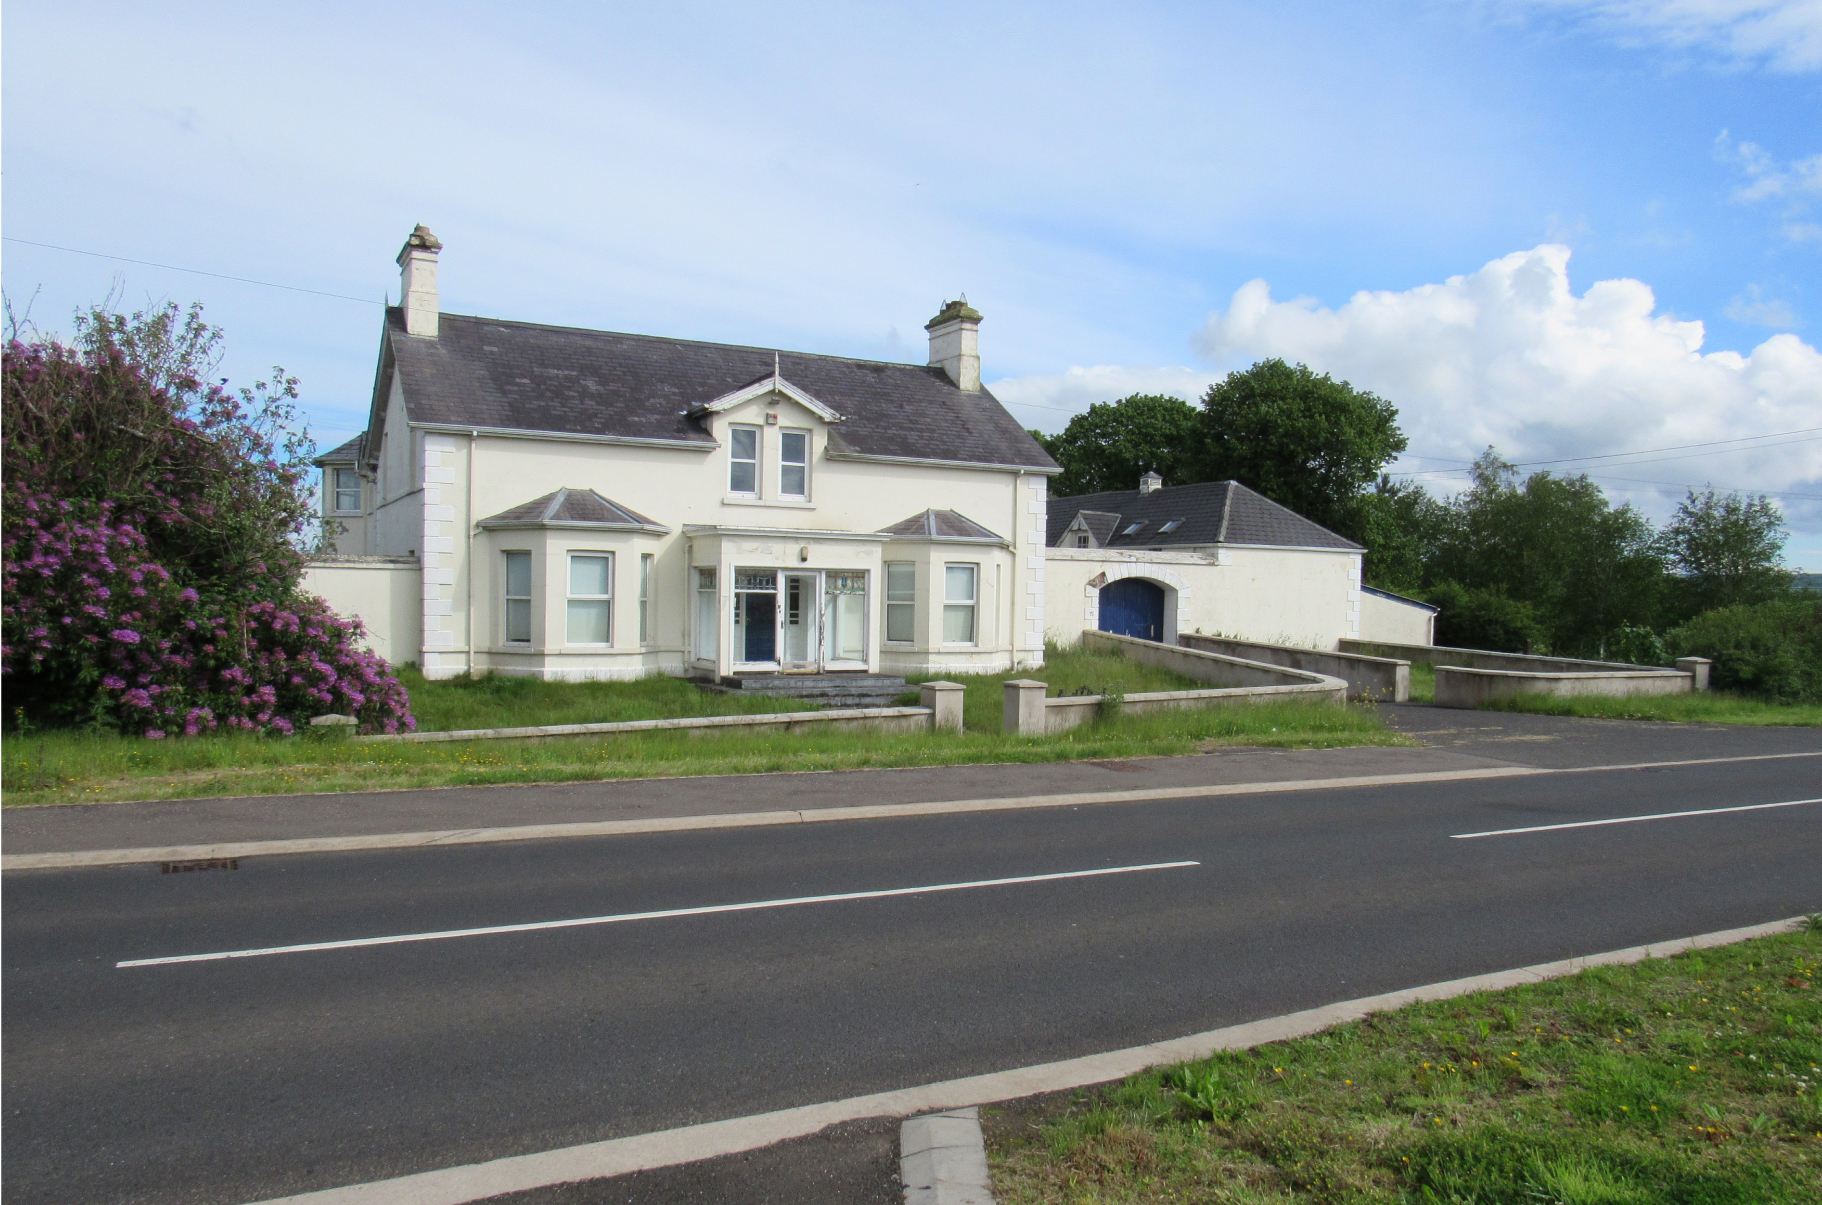 71 Springmount Road, Ballymena, Co. Antrim, BT44 9RB photo